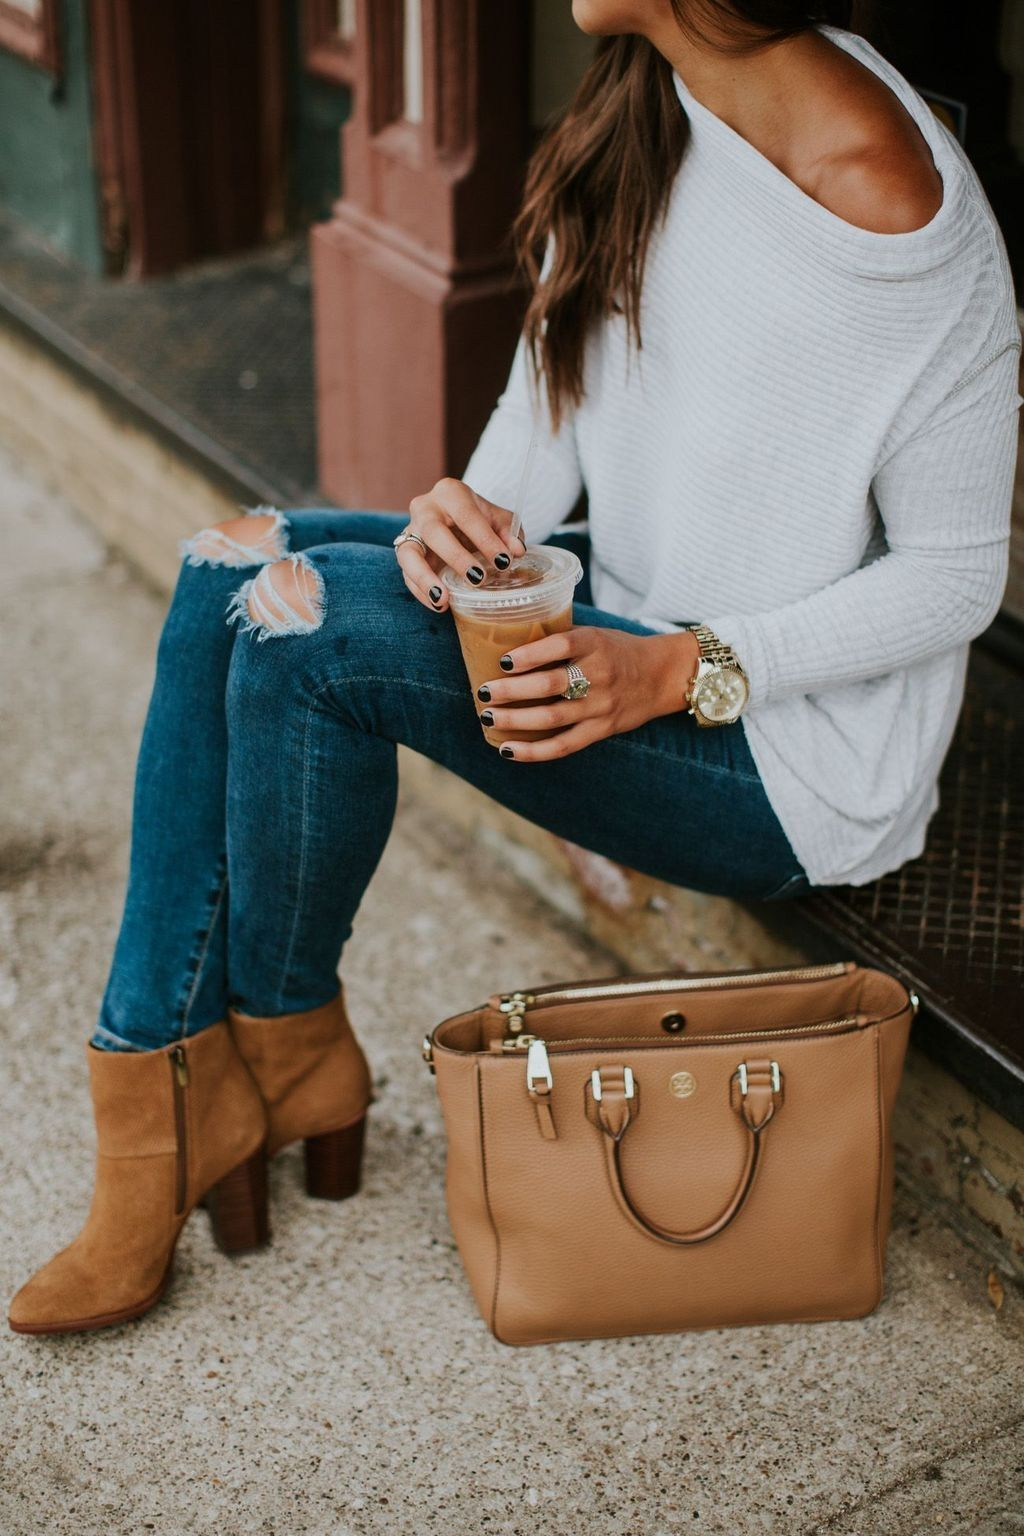 d85fc4444907 46 The Best Outfit Ideas Make Pretty And Catchy Look Fall in 2018 ...